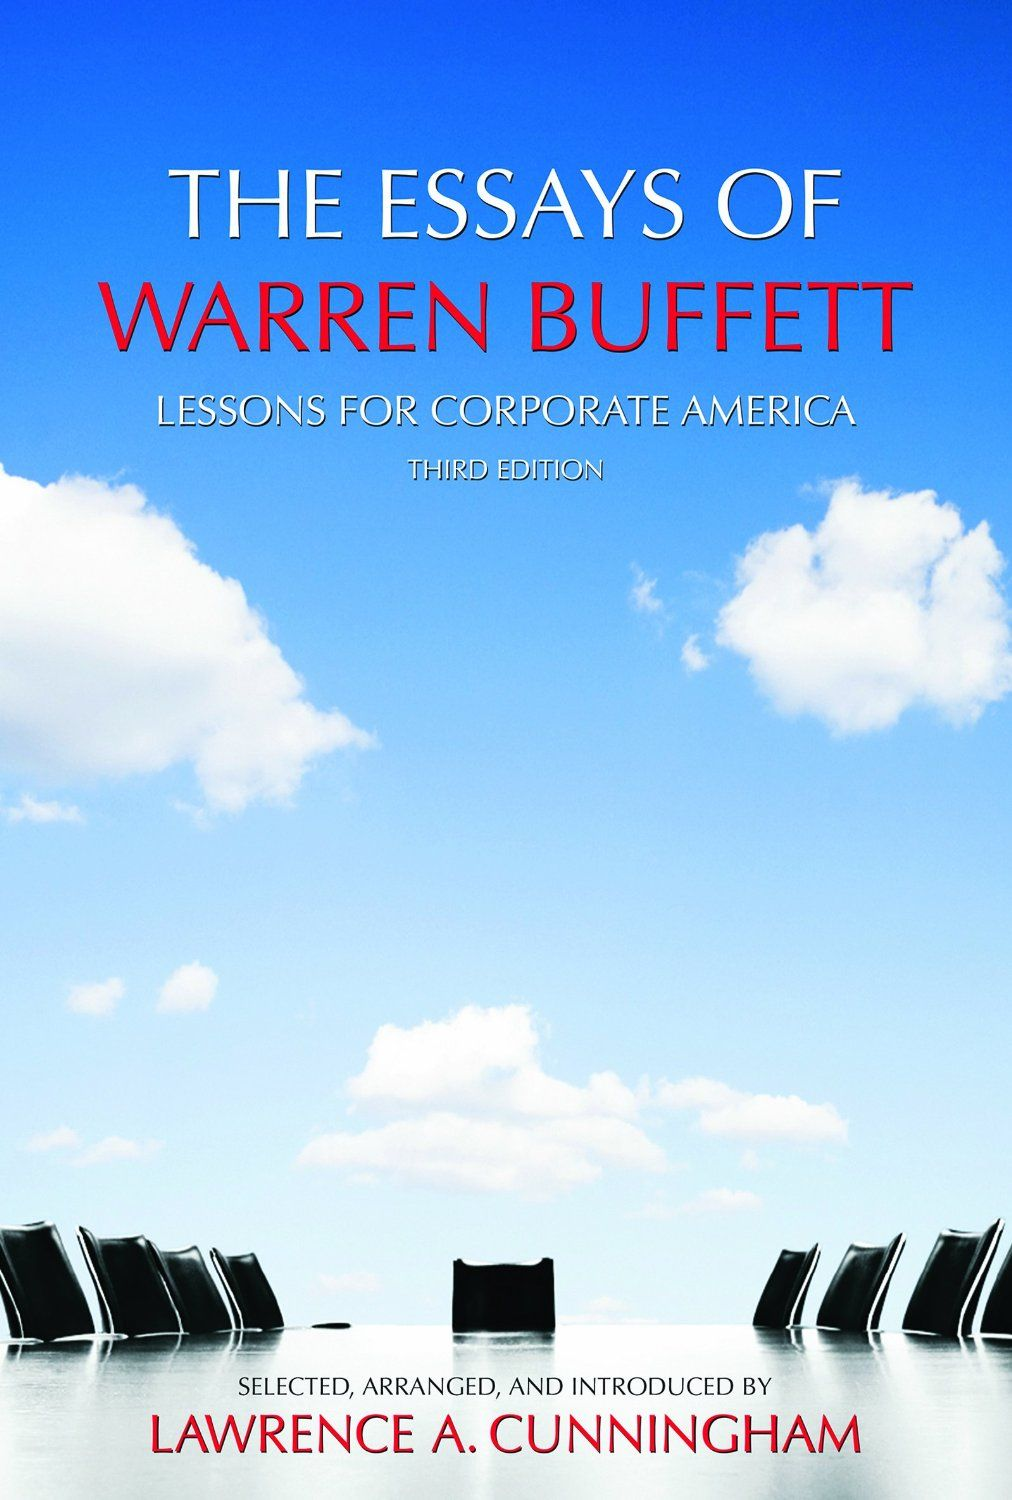 Full Size of The Essays Of Warren Buffett Lessons For Corporate America Third Edition Essay